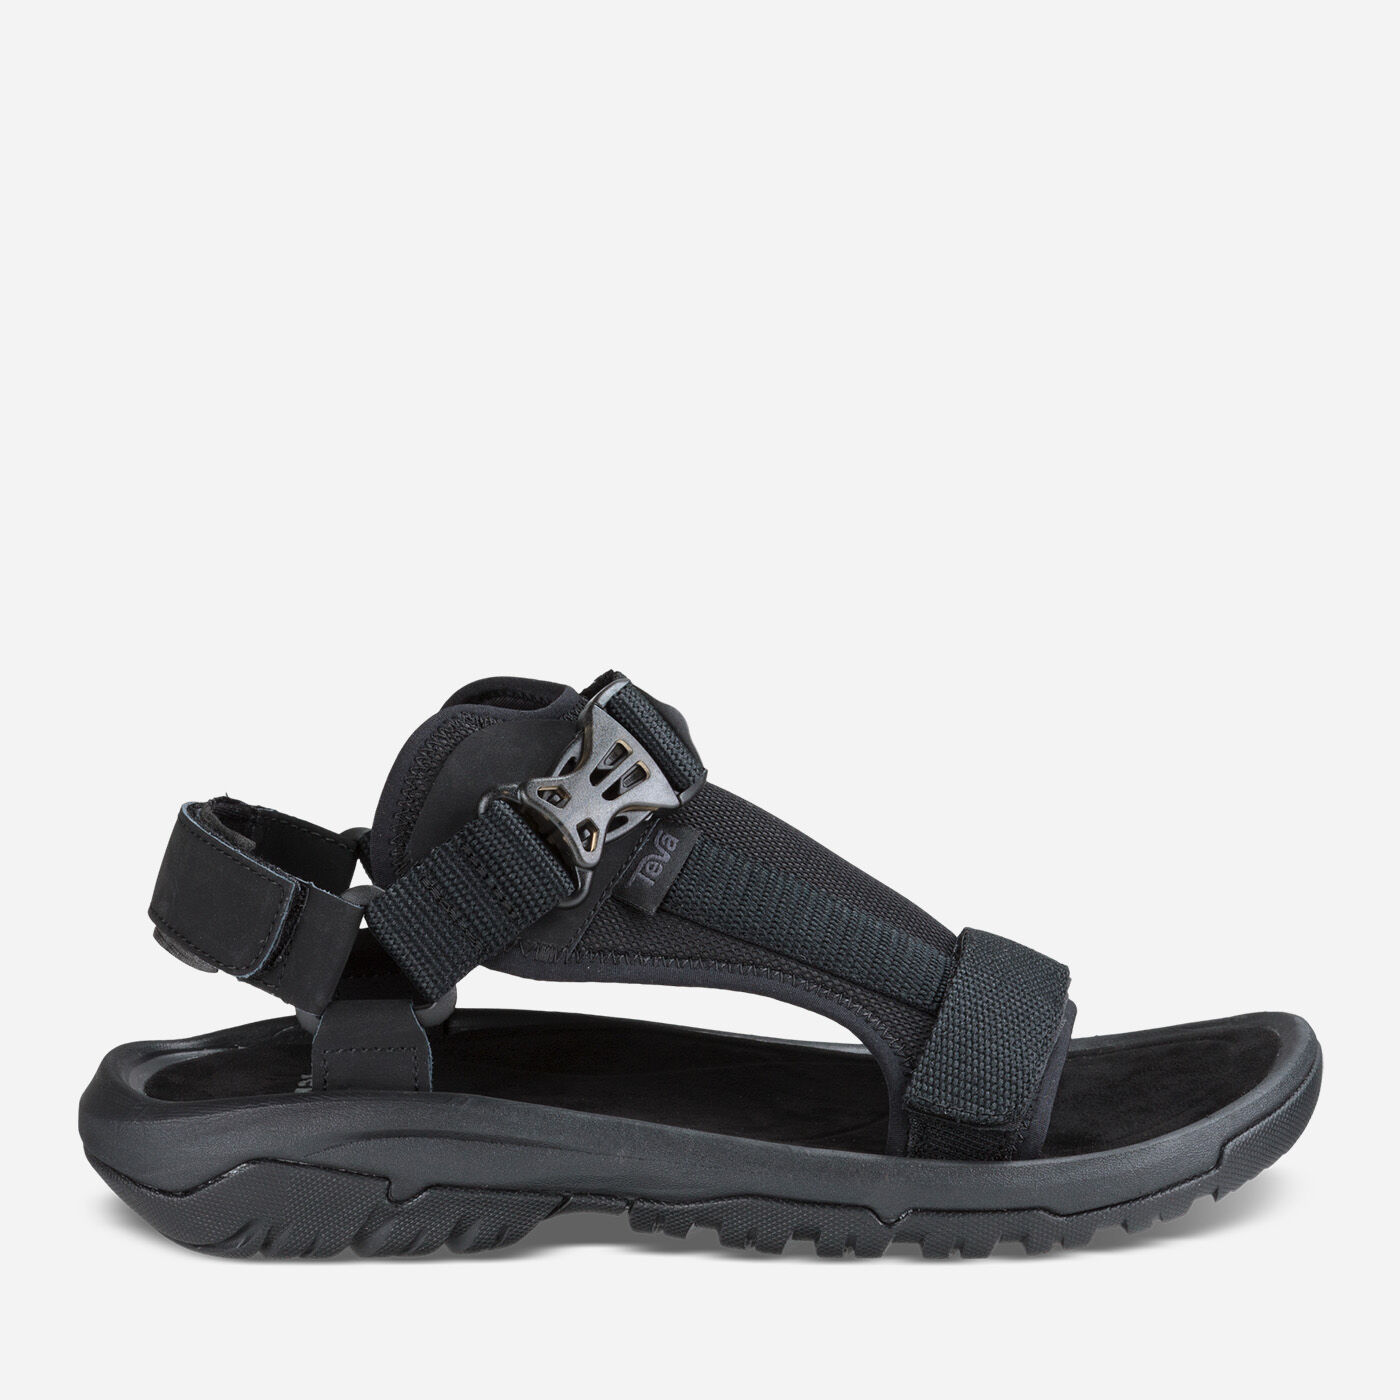 cabeaa1dafe5 Buy sandals for men   OFF64% Discounted